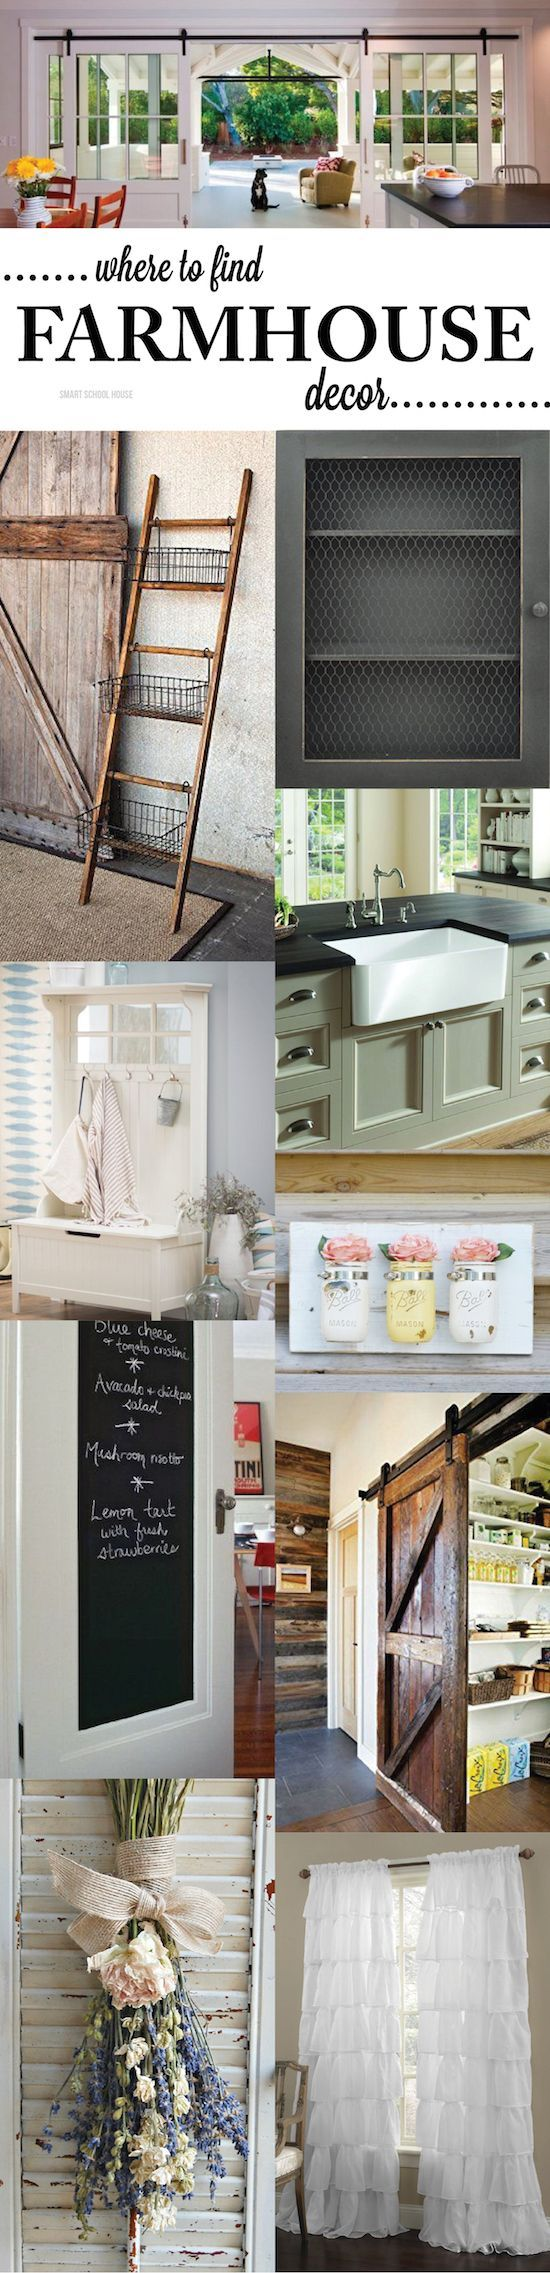 Look Over This Where to find farmhouse decor! Tips and tricks for bringing farm house decor into your home! The post Where to find farmhouse decor! & Where to buy farmhouse decor | Farm house Farming and House